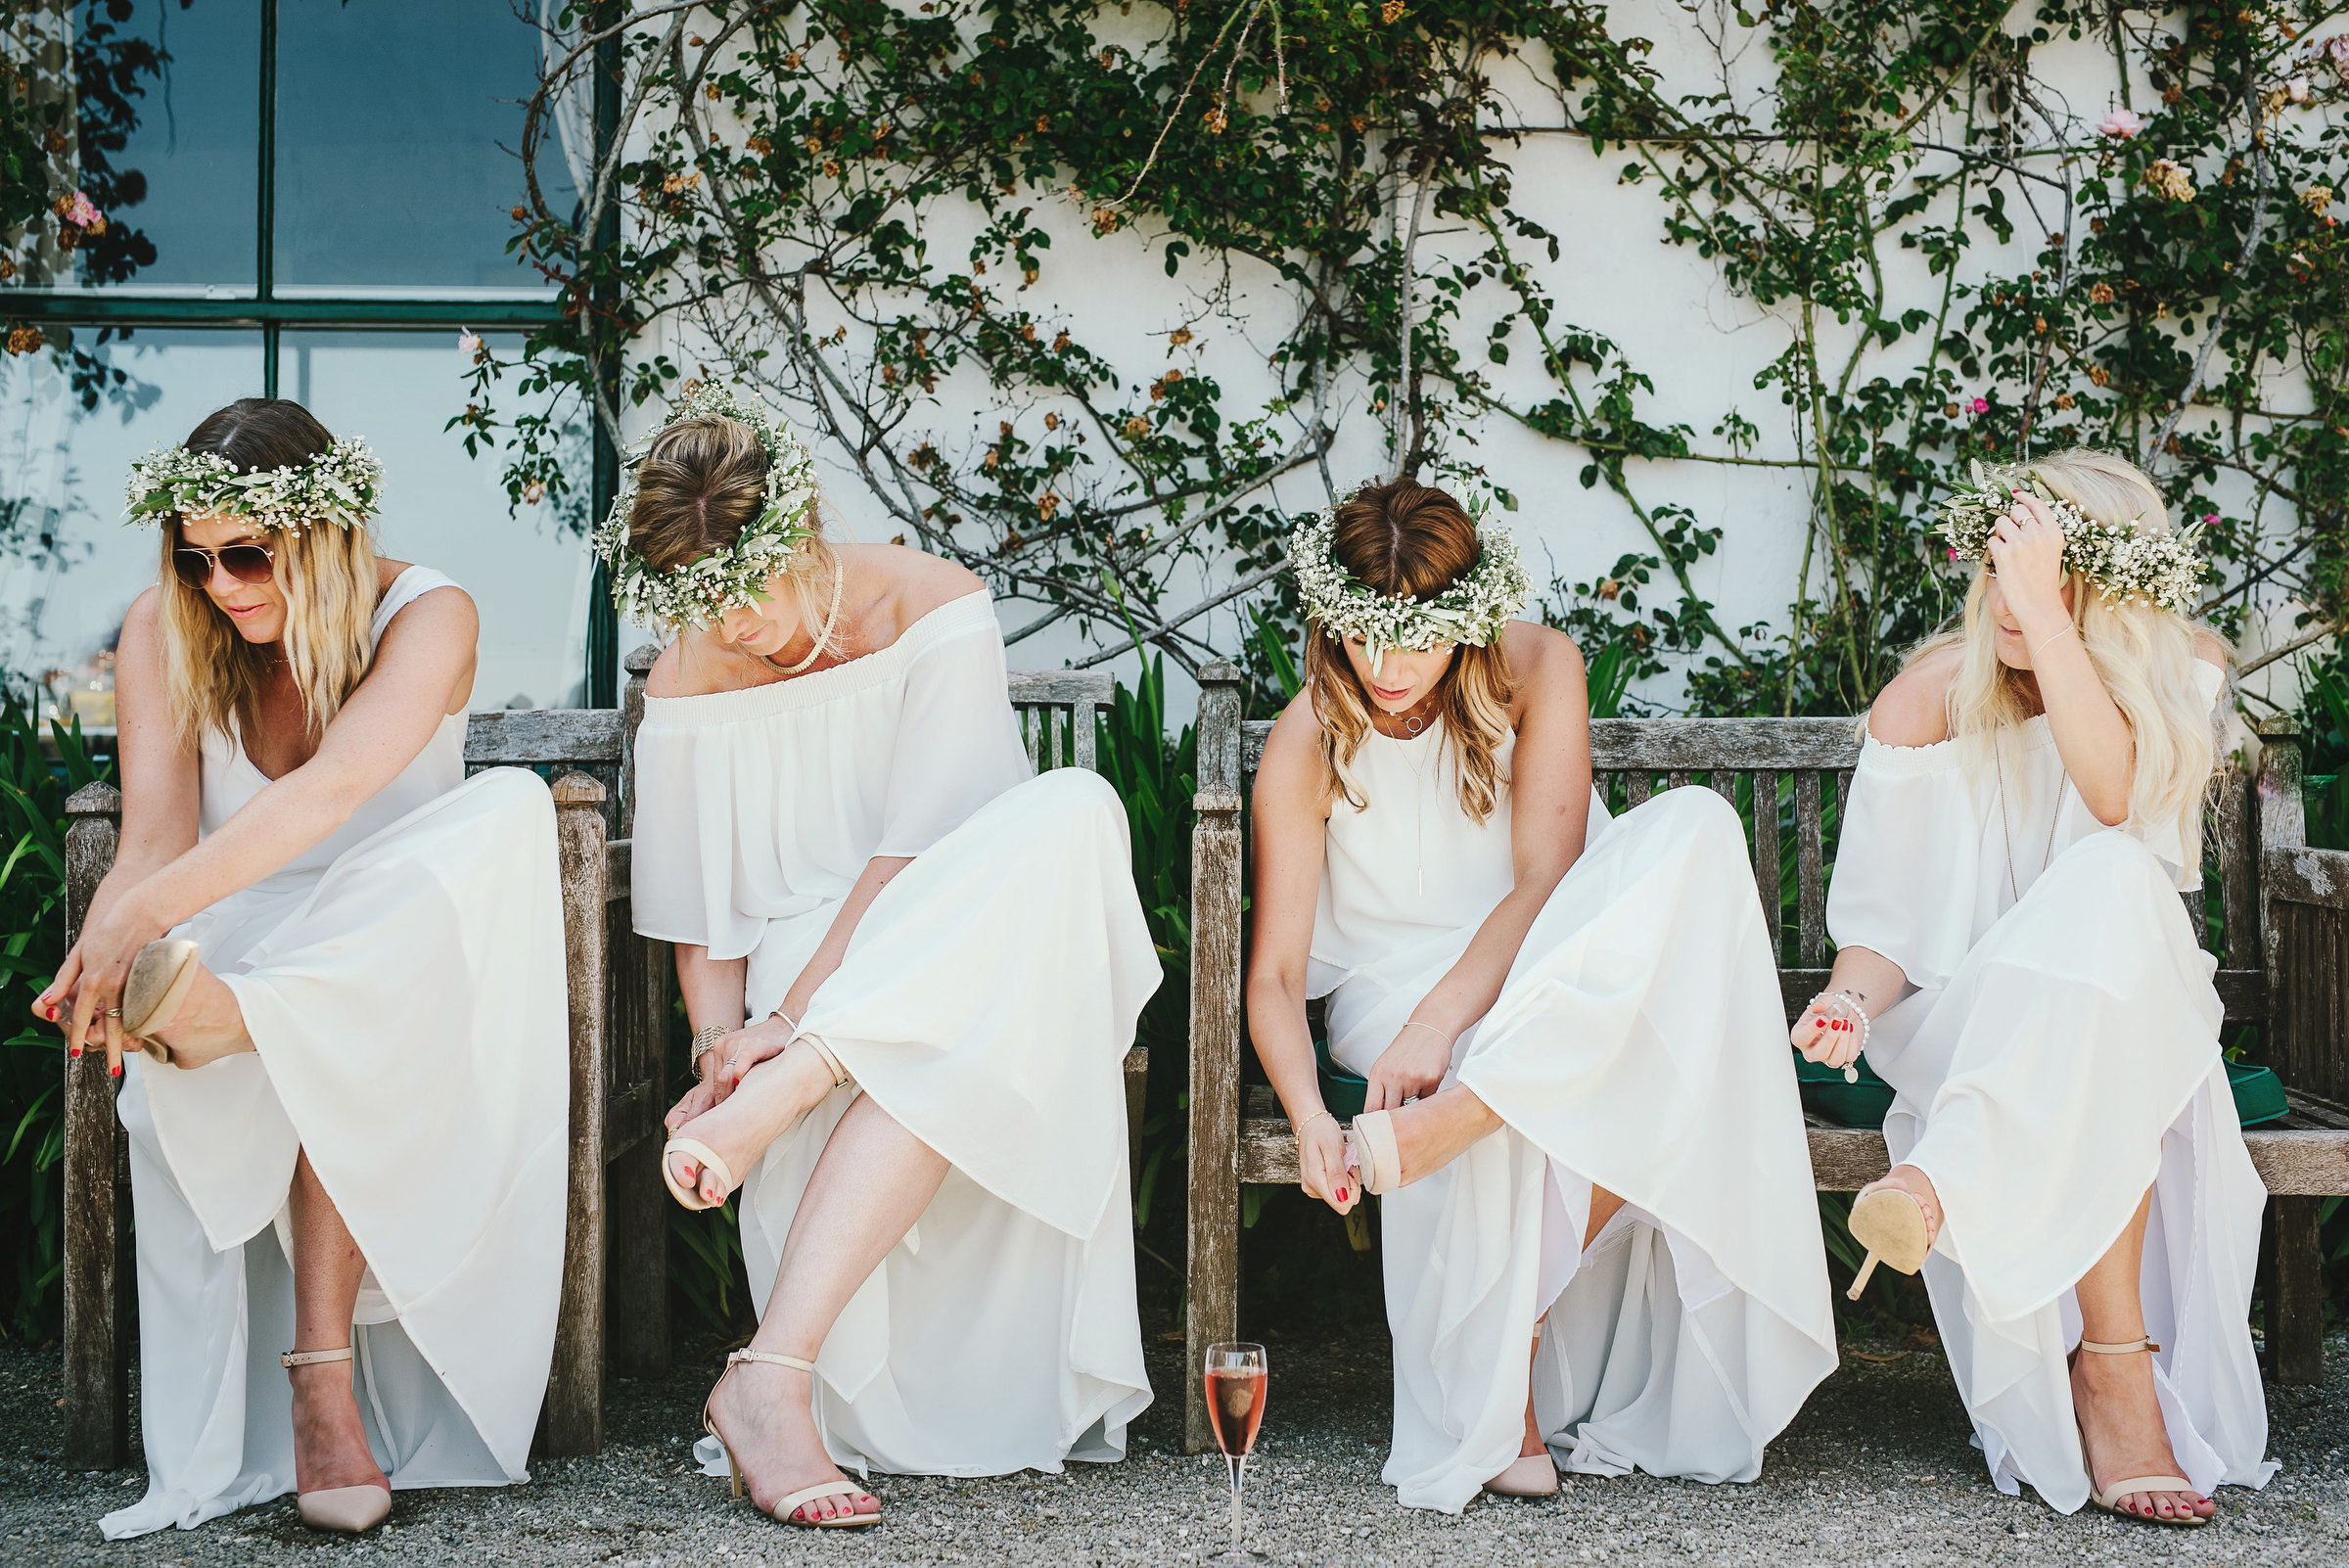 Bridesmaids putting shoes on photo by Andy Gaines Photography